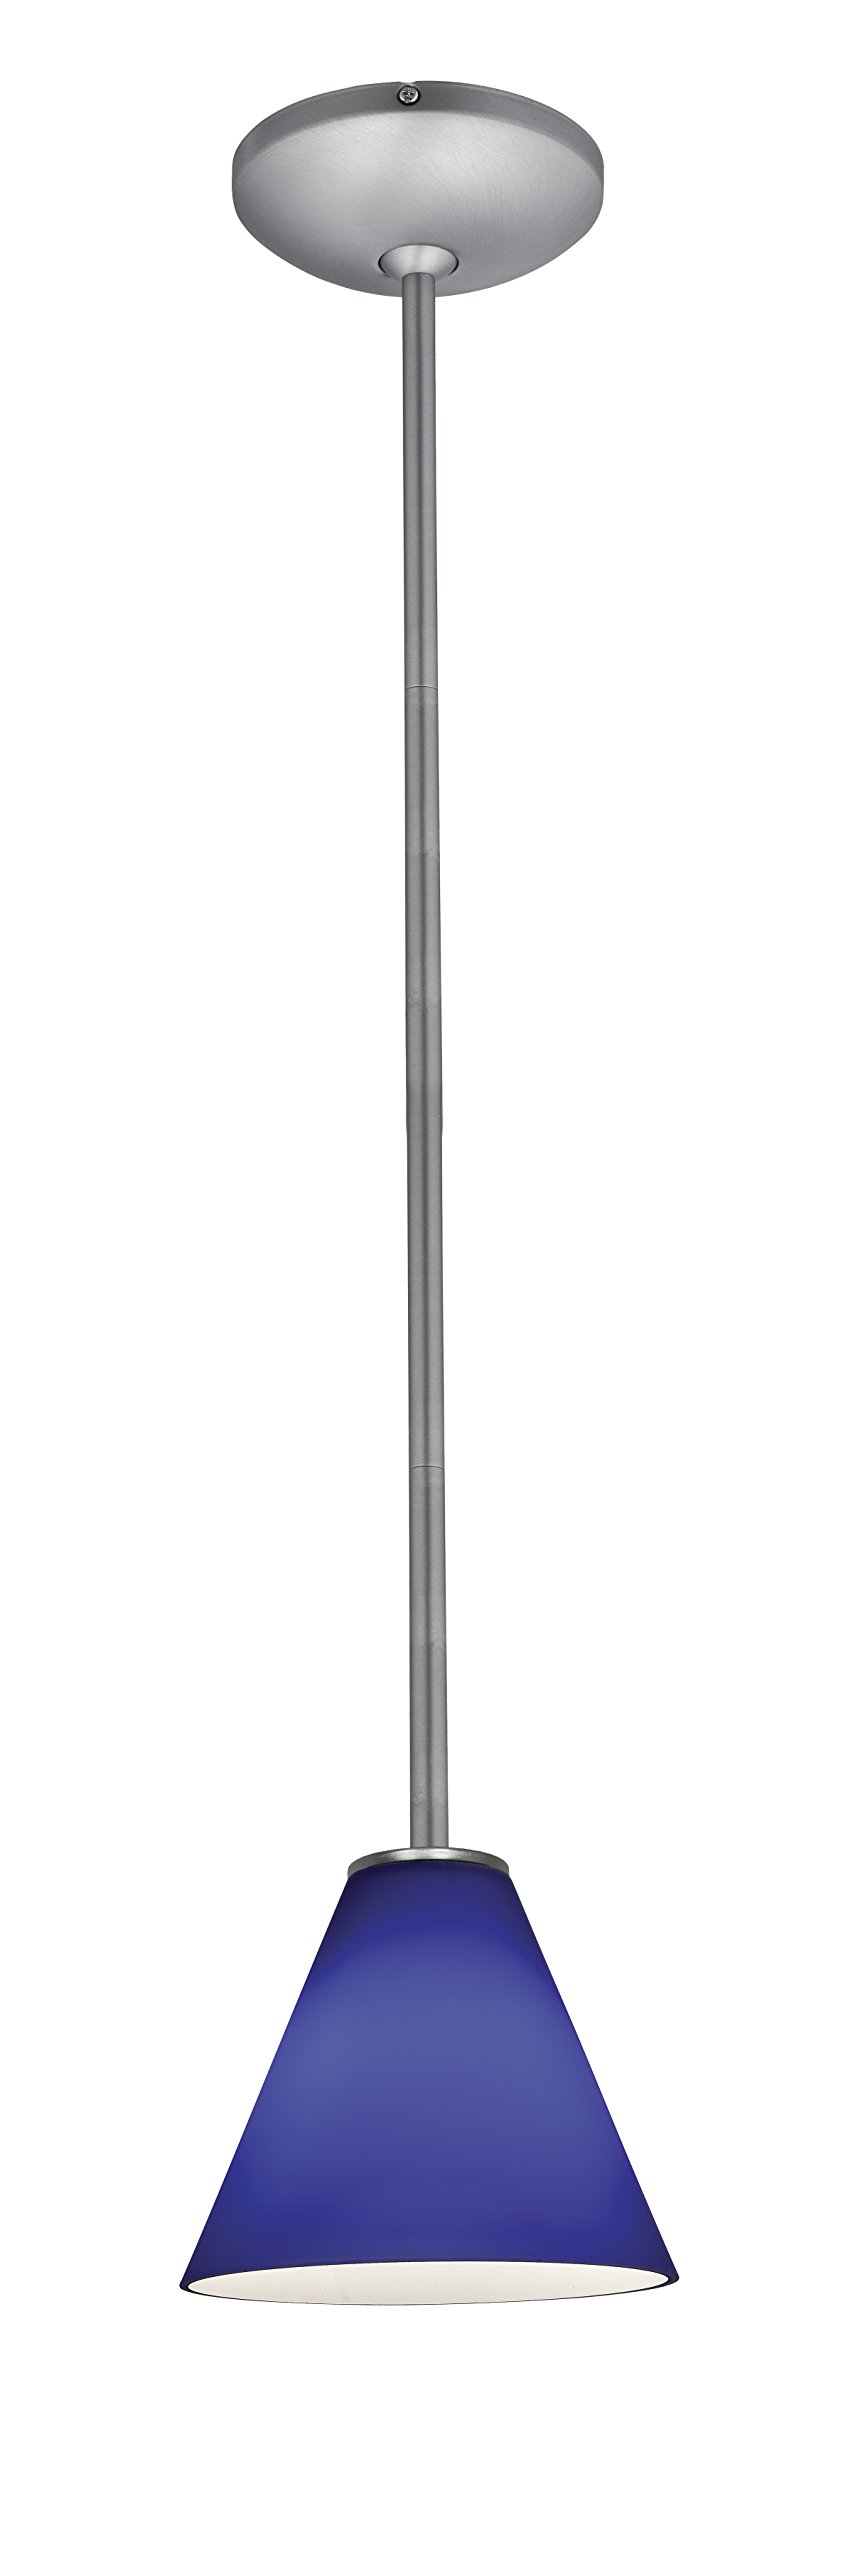 Martini Glass Pendant - Rods - Brushed Steel Finish - Cobalt Glass Shade